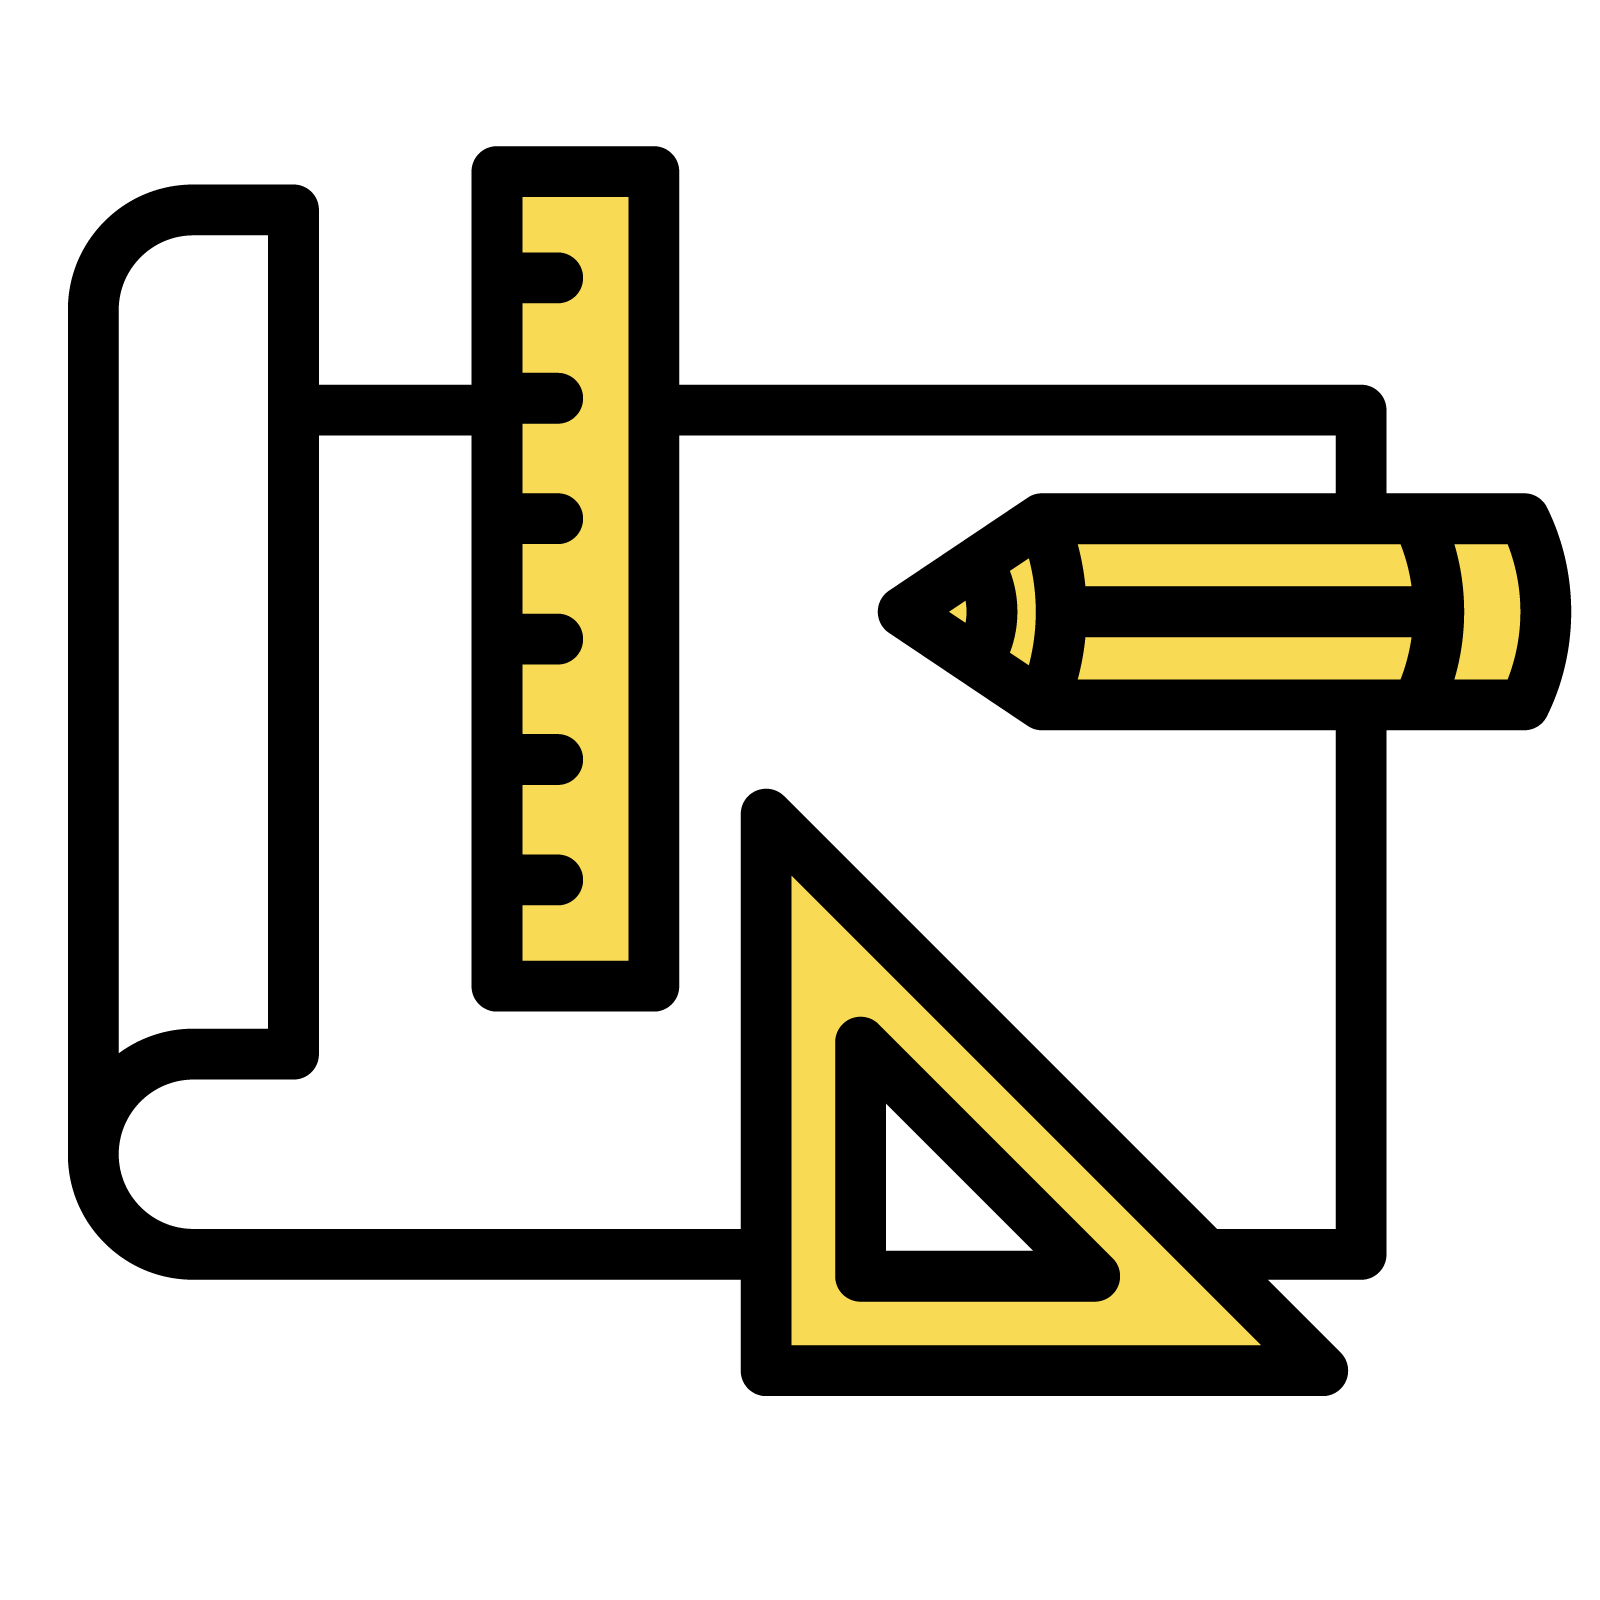 clip art free download Engineering clipart.  collection of transparent.